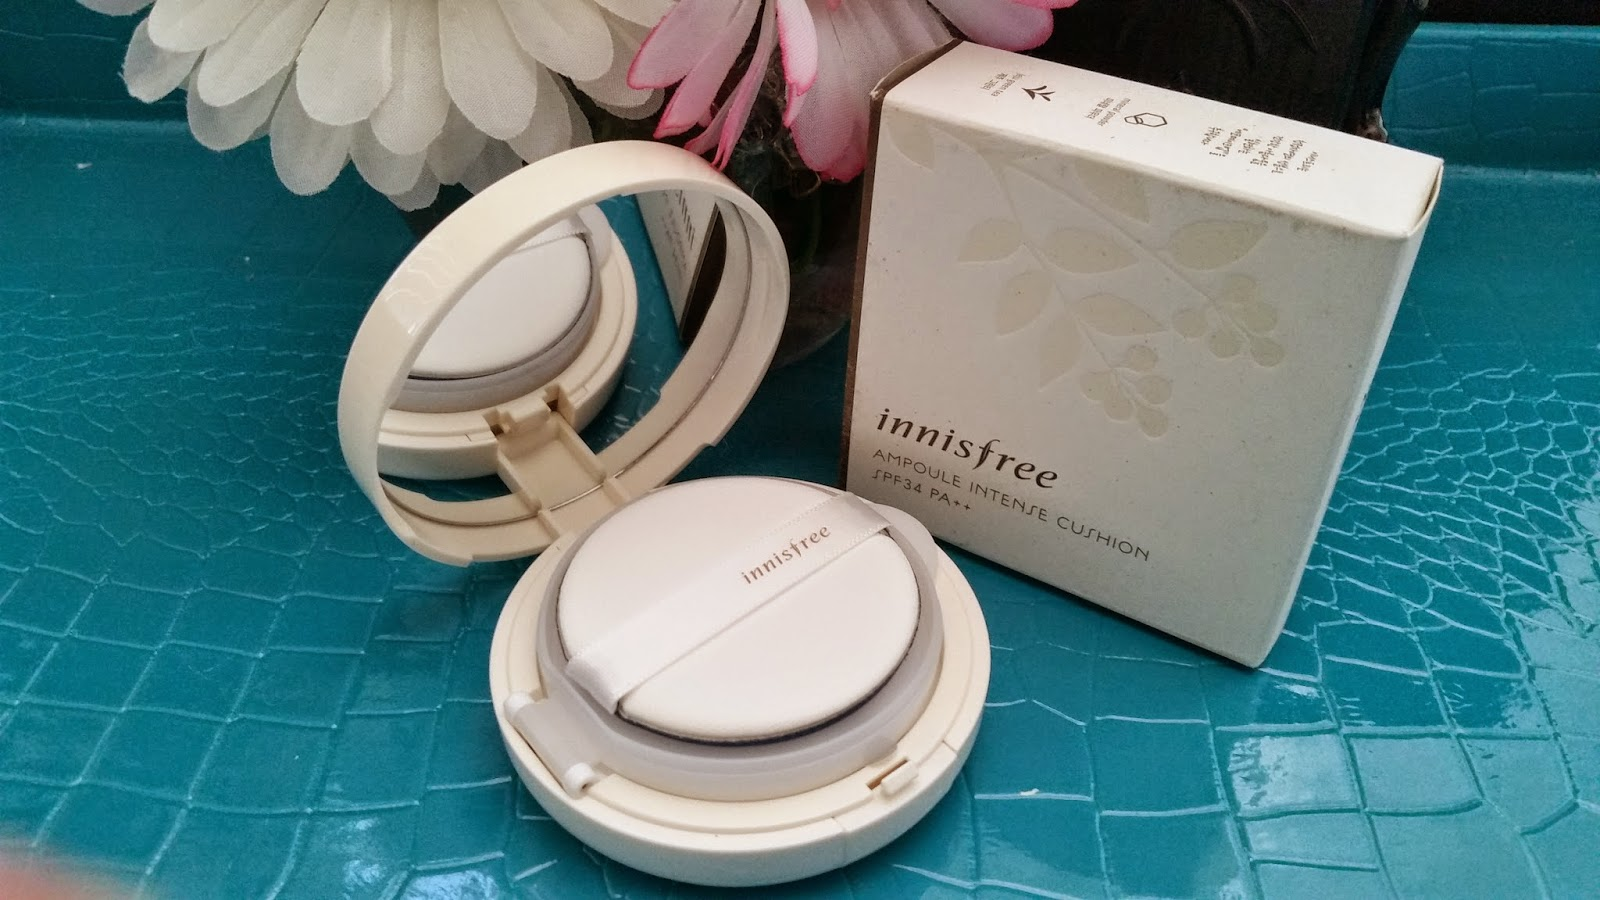 Ampoule Intense Cushion compact look